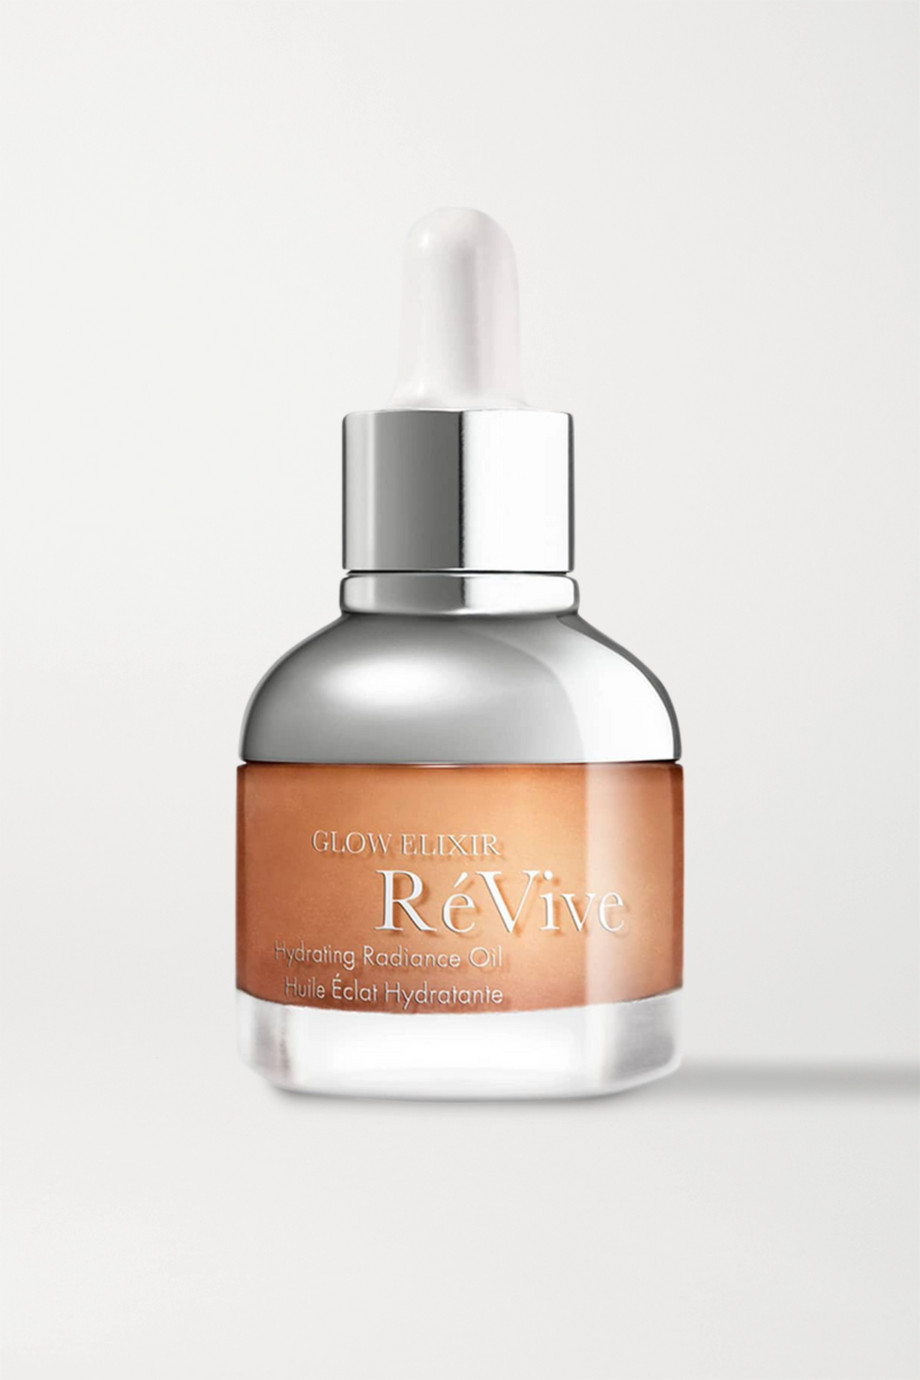 RÉVIVE Glow Elixir​ Hydrating Radiance Oil, 30ml